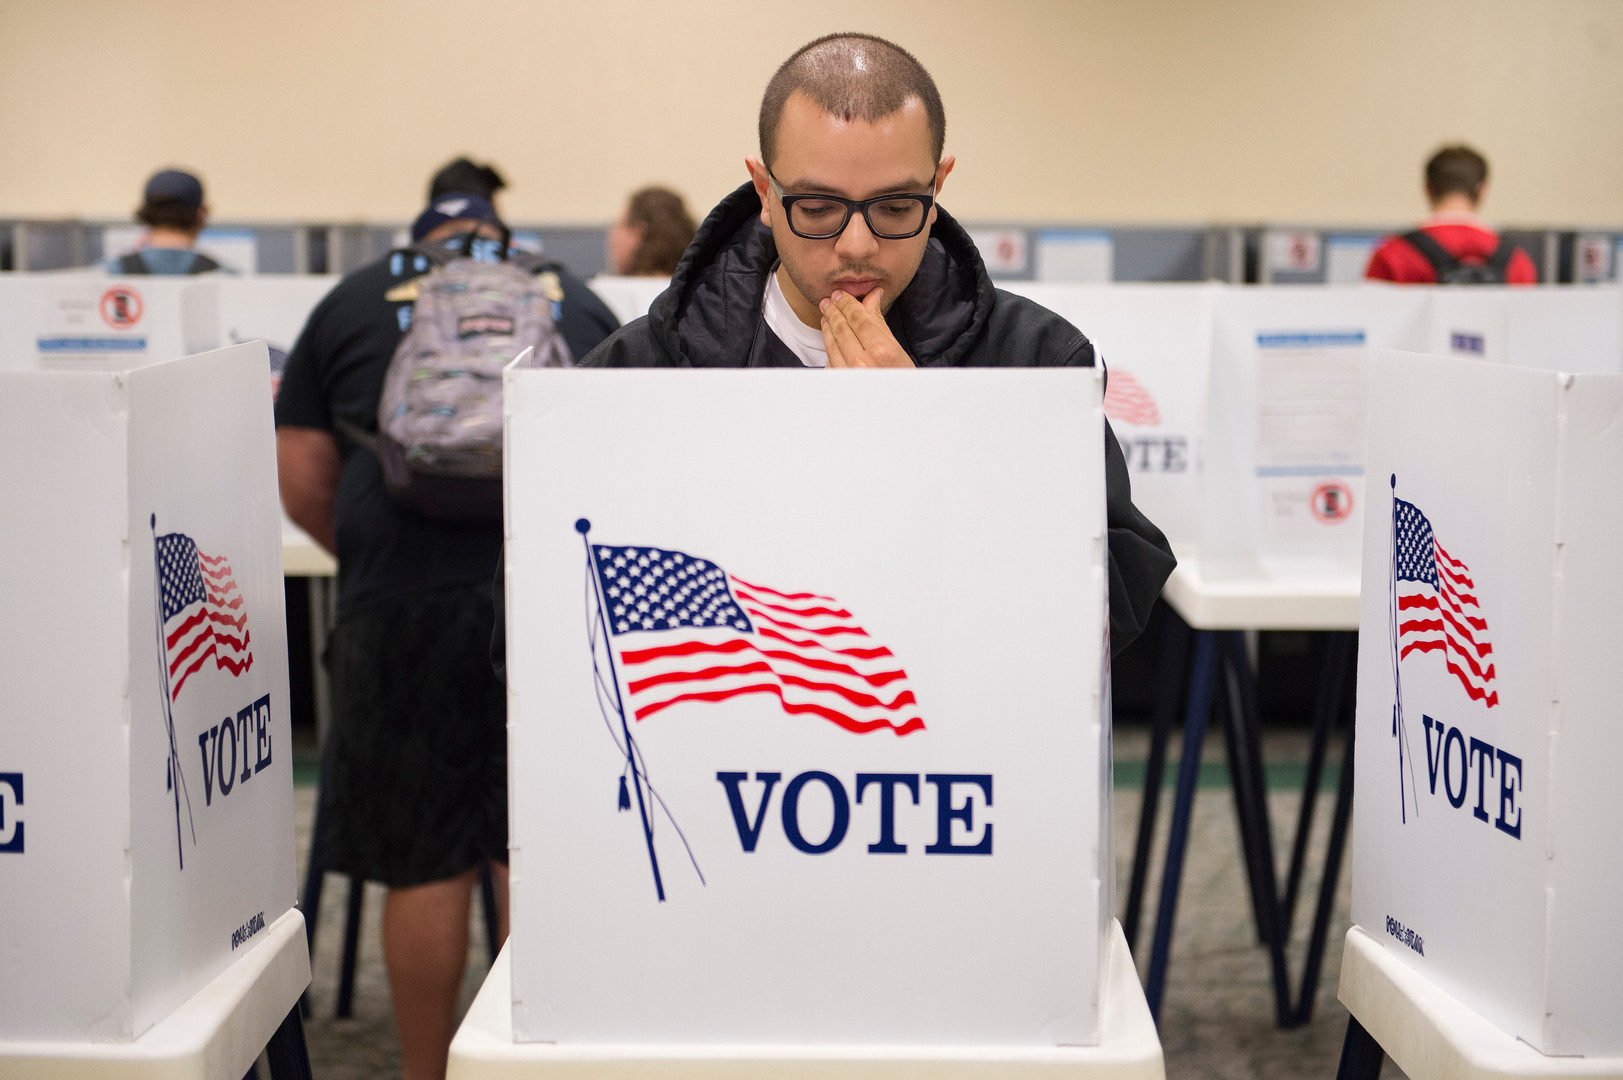 Matthew Moreno looks over his choices in the voting booth during early voting at CSU's Lory Student Center on Monday, November 5, 2018. Election judges said a steady stream of students were turning out to vote the day before Election Day. AUSTIN HUMPHREYS/THE COLORADOAN